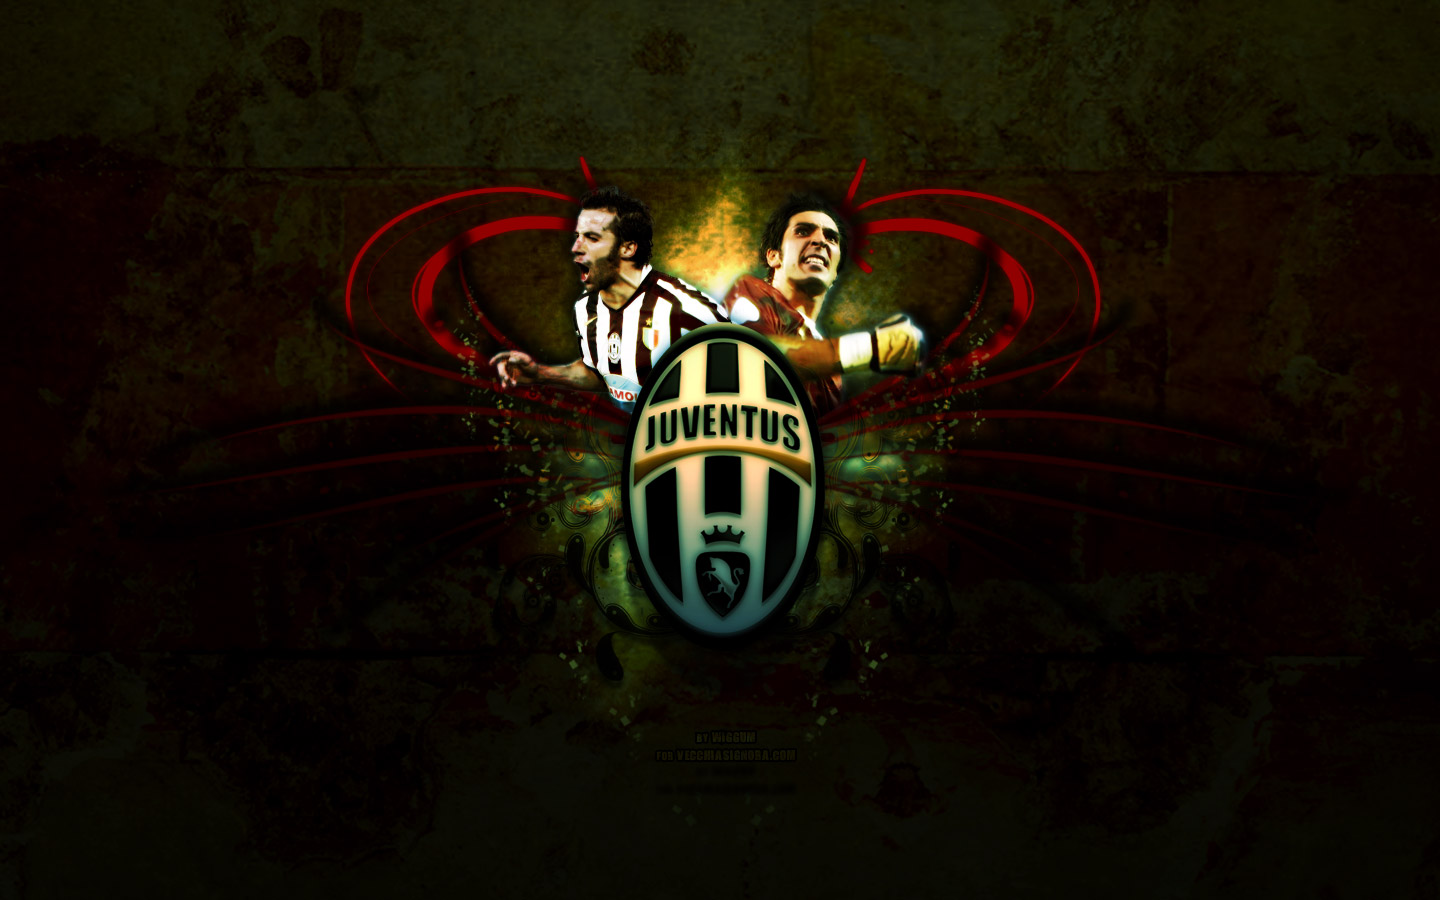 Juventus wallpapers wallpapersafari for Sfondo juventus hd